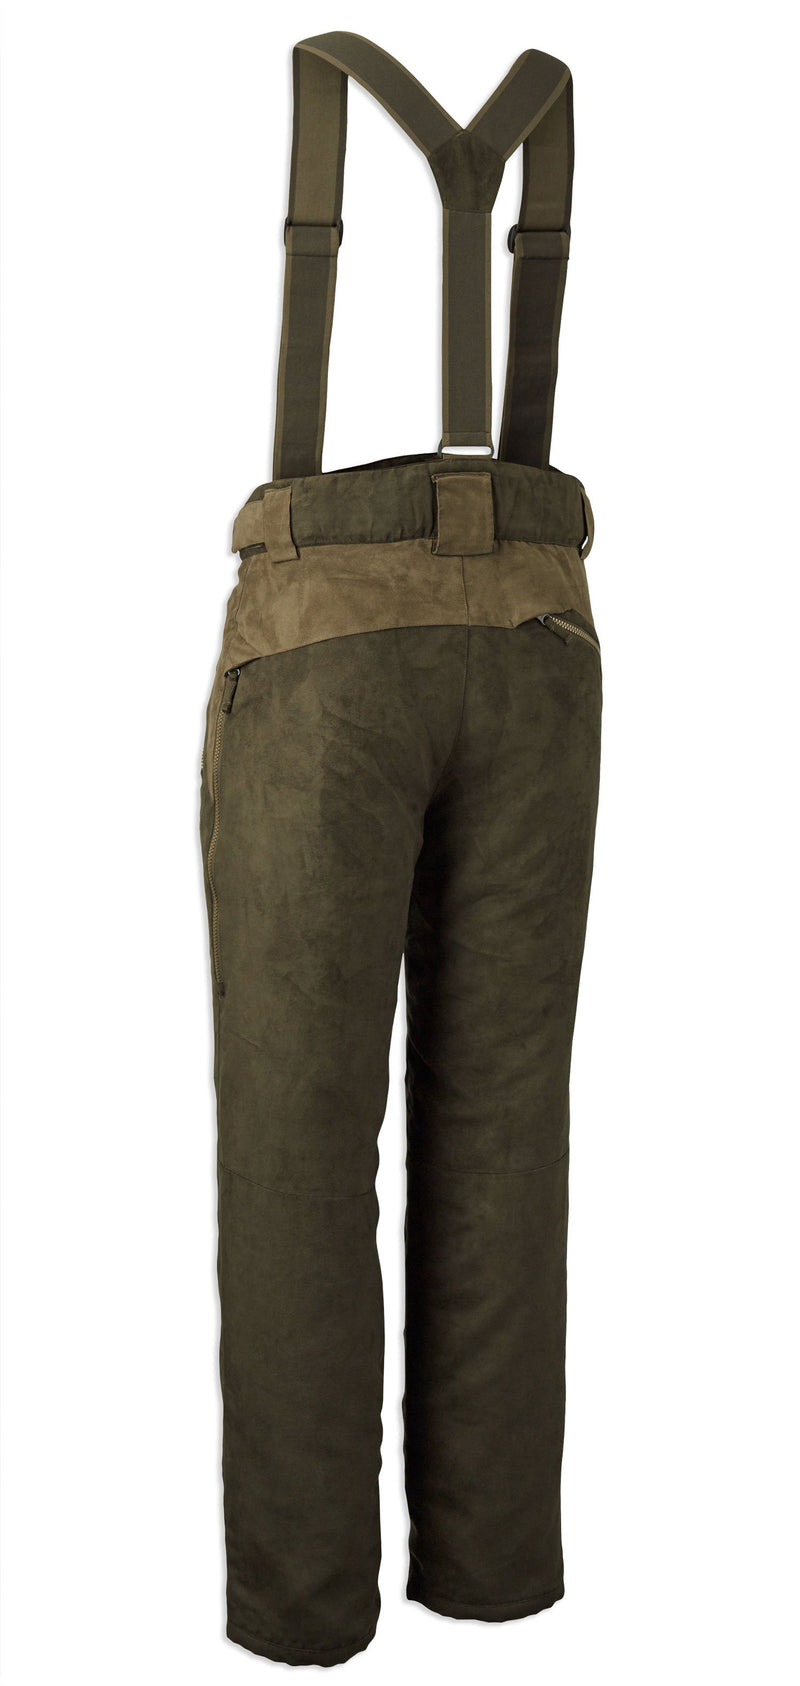 Back View Deerhunter Deer Trousers Waterproof shooting trousers